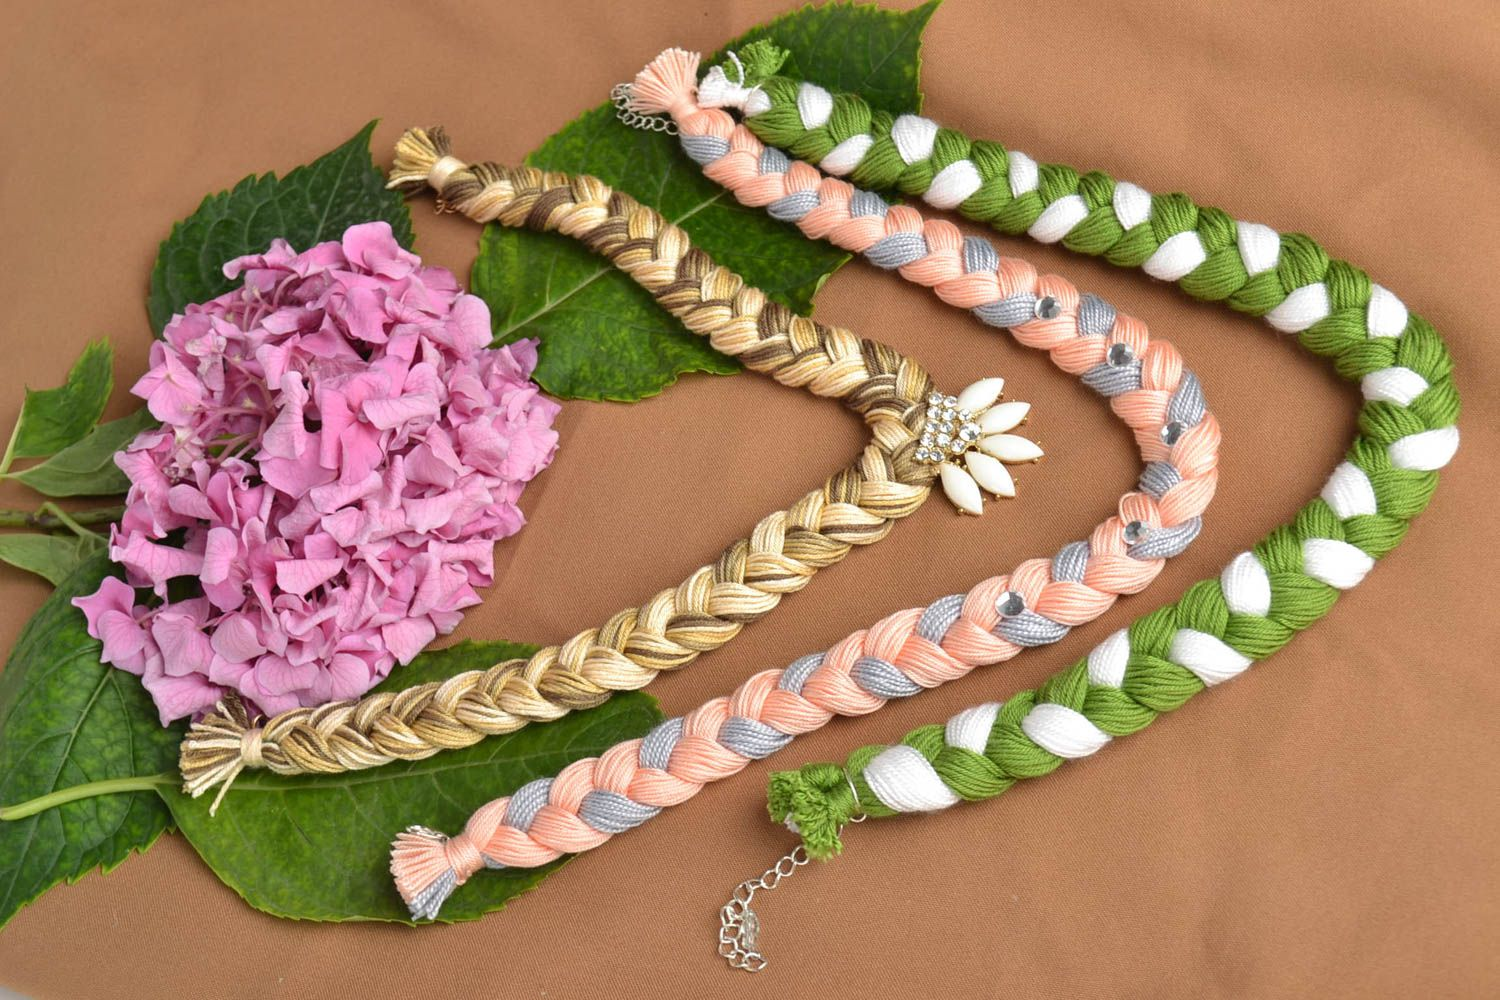 Madeheart Gt Handmade Necklaces Made Of Threads Present For